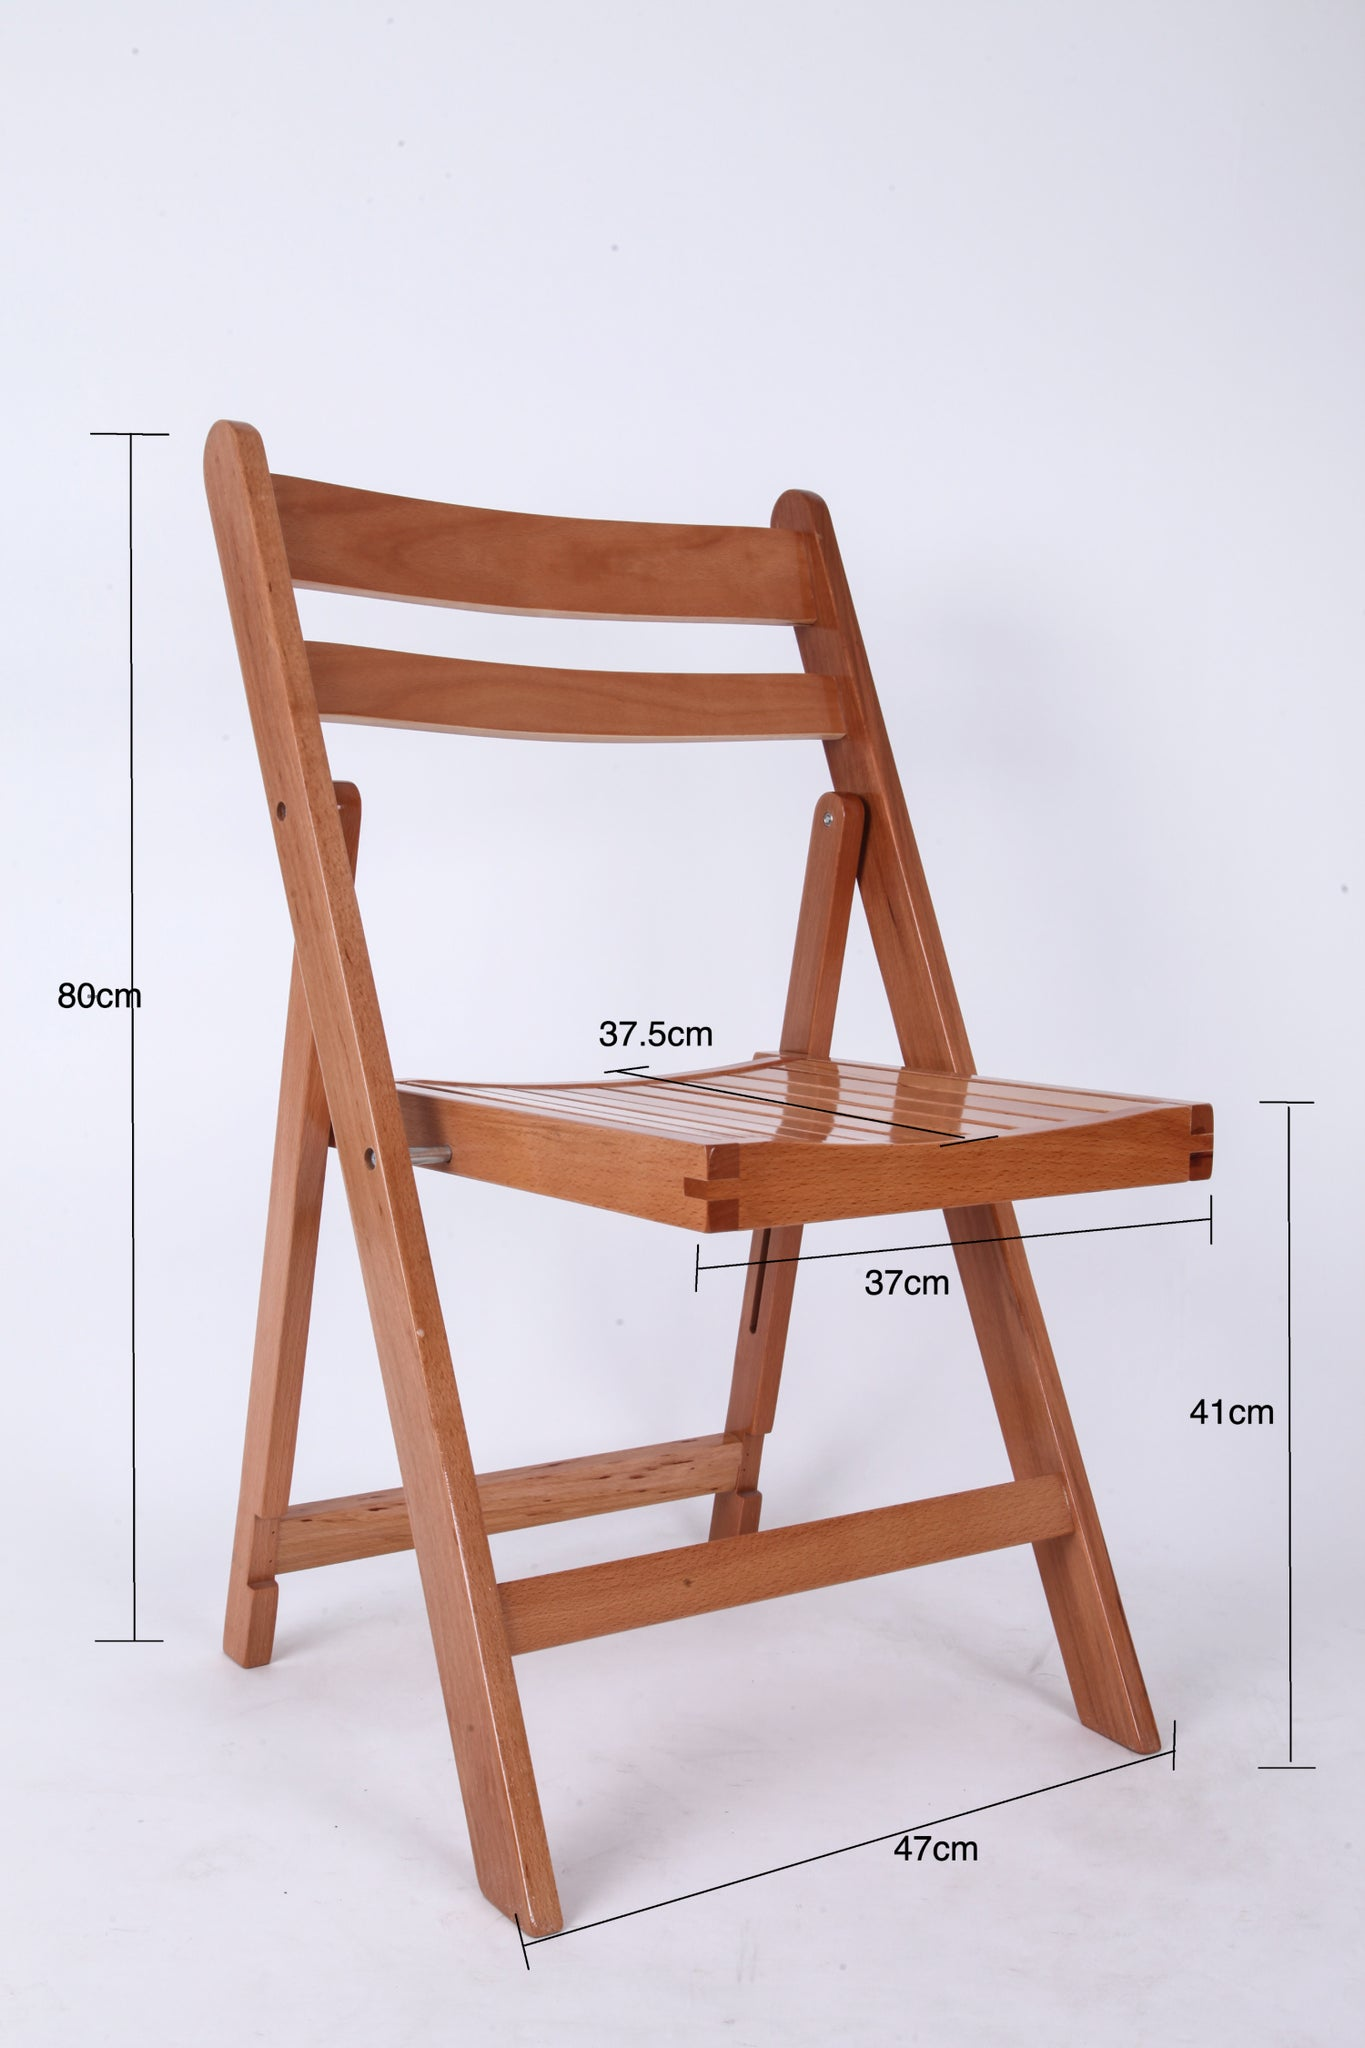 Timber Folding Chairs - Natural Slatted Seat